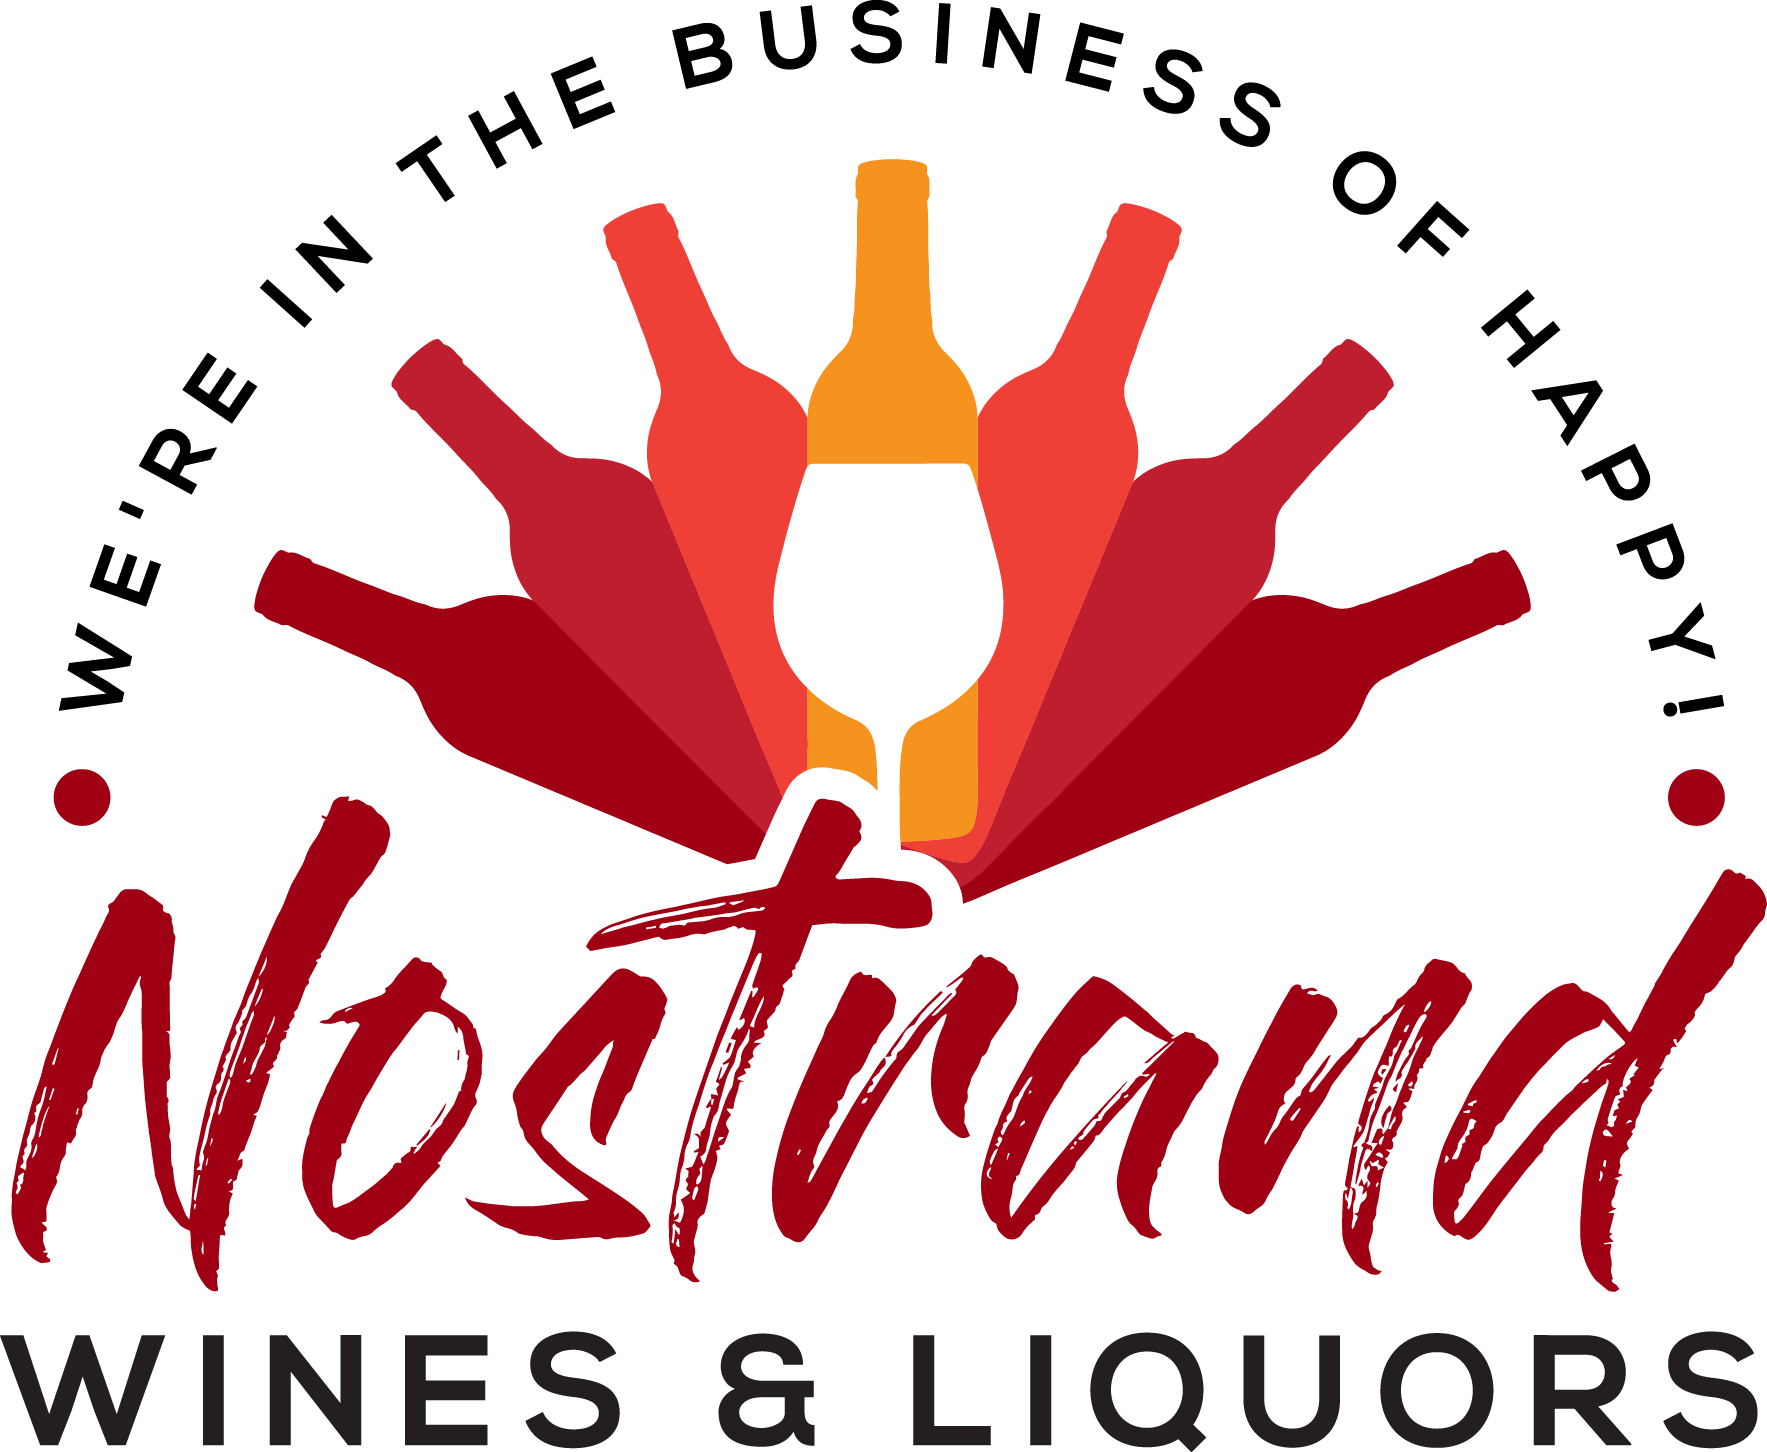 Nostrand Wines & Liquors